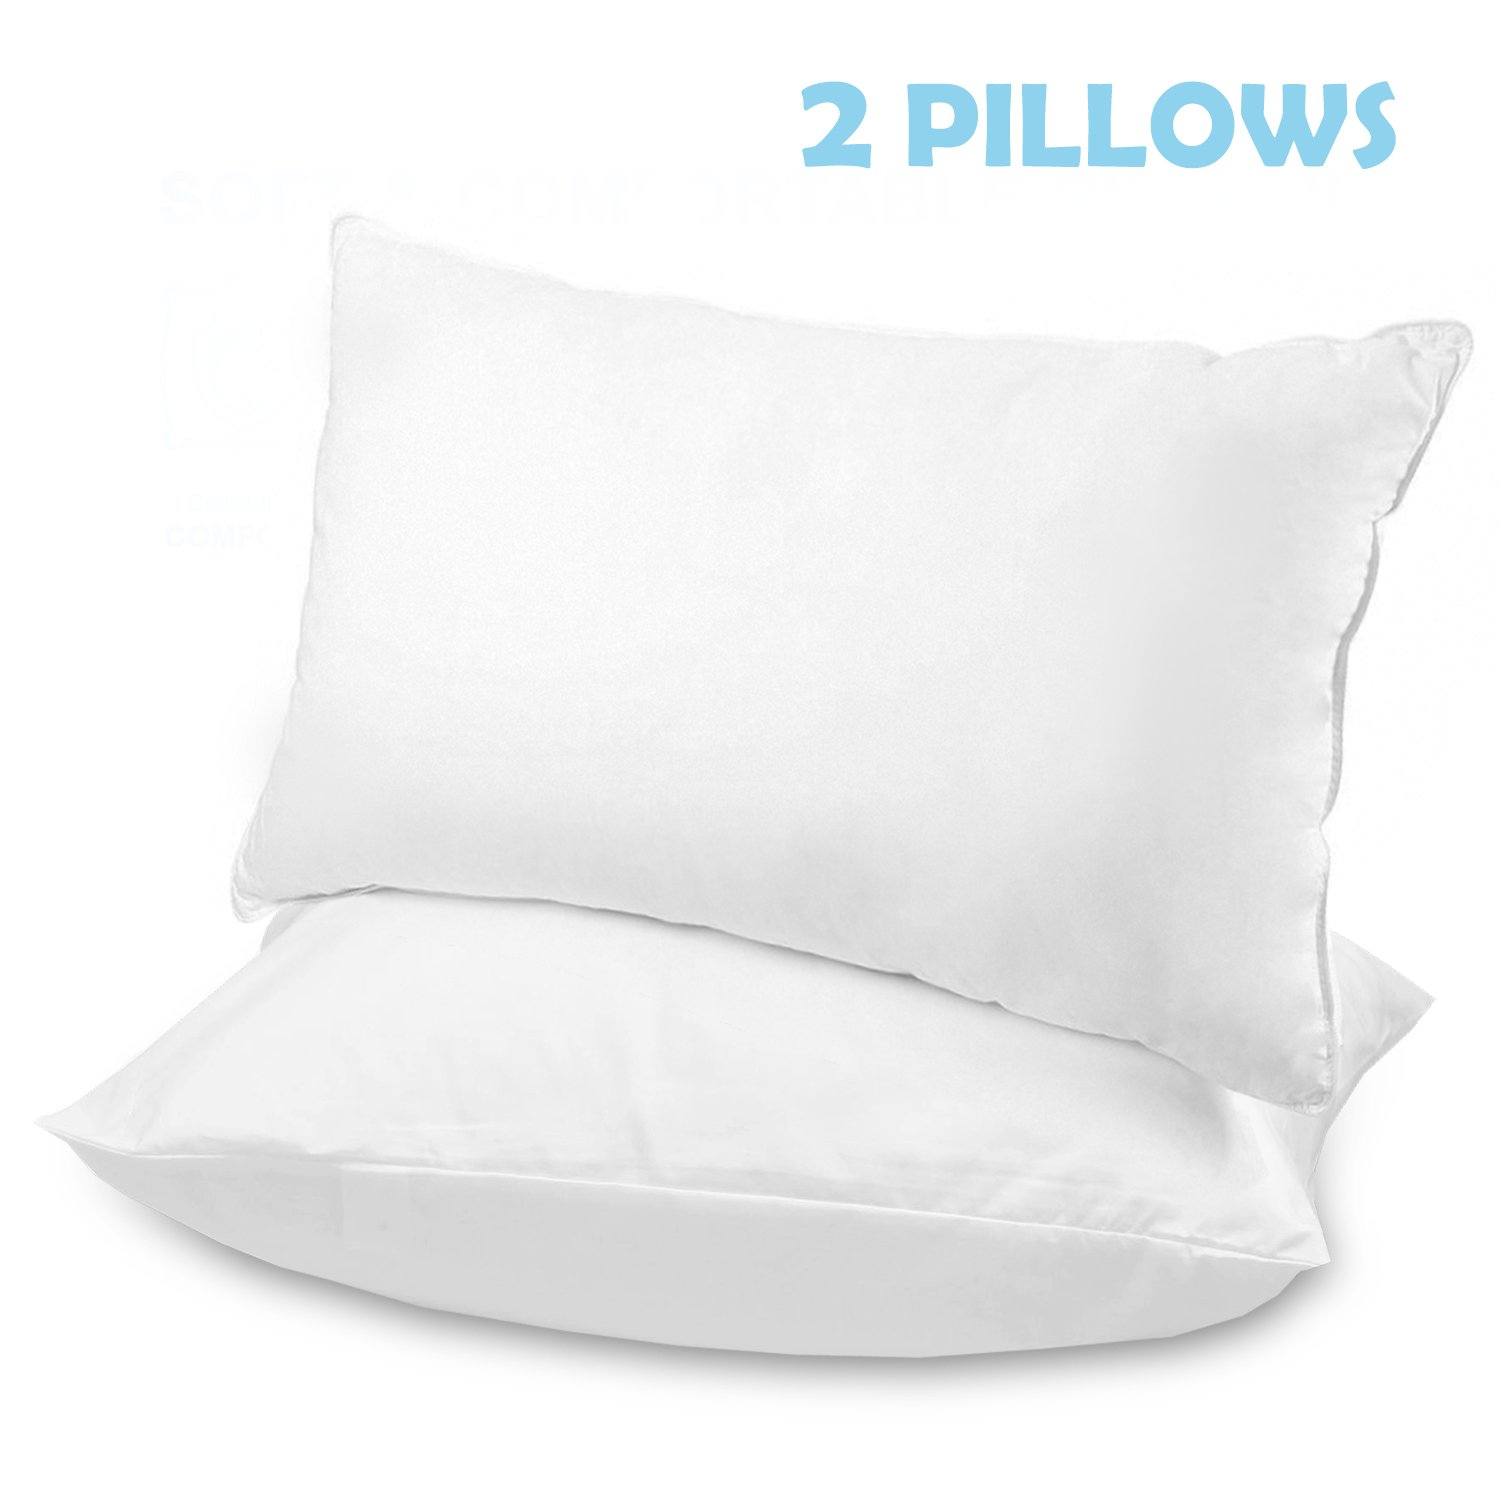 Bed Pillows for Sleeping, Dust-Mite Resistant, Hypoallergenic Microfiber Fill, 100% Cotton Cover, Comfortable Pillows for Sleeping (Standard 20'' x 26'', Set of 2, White)